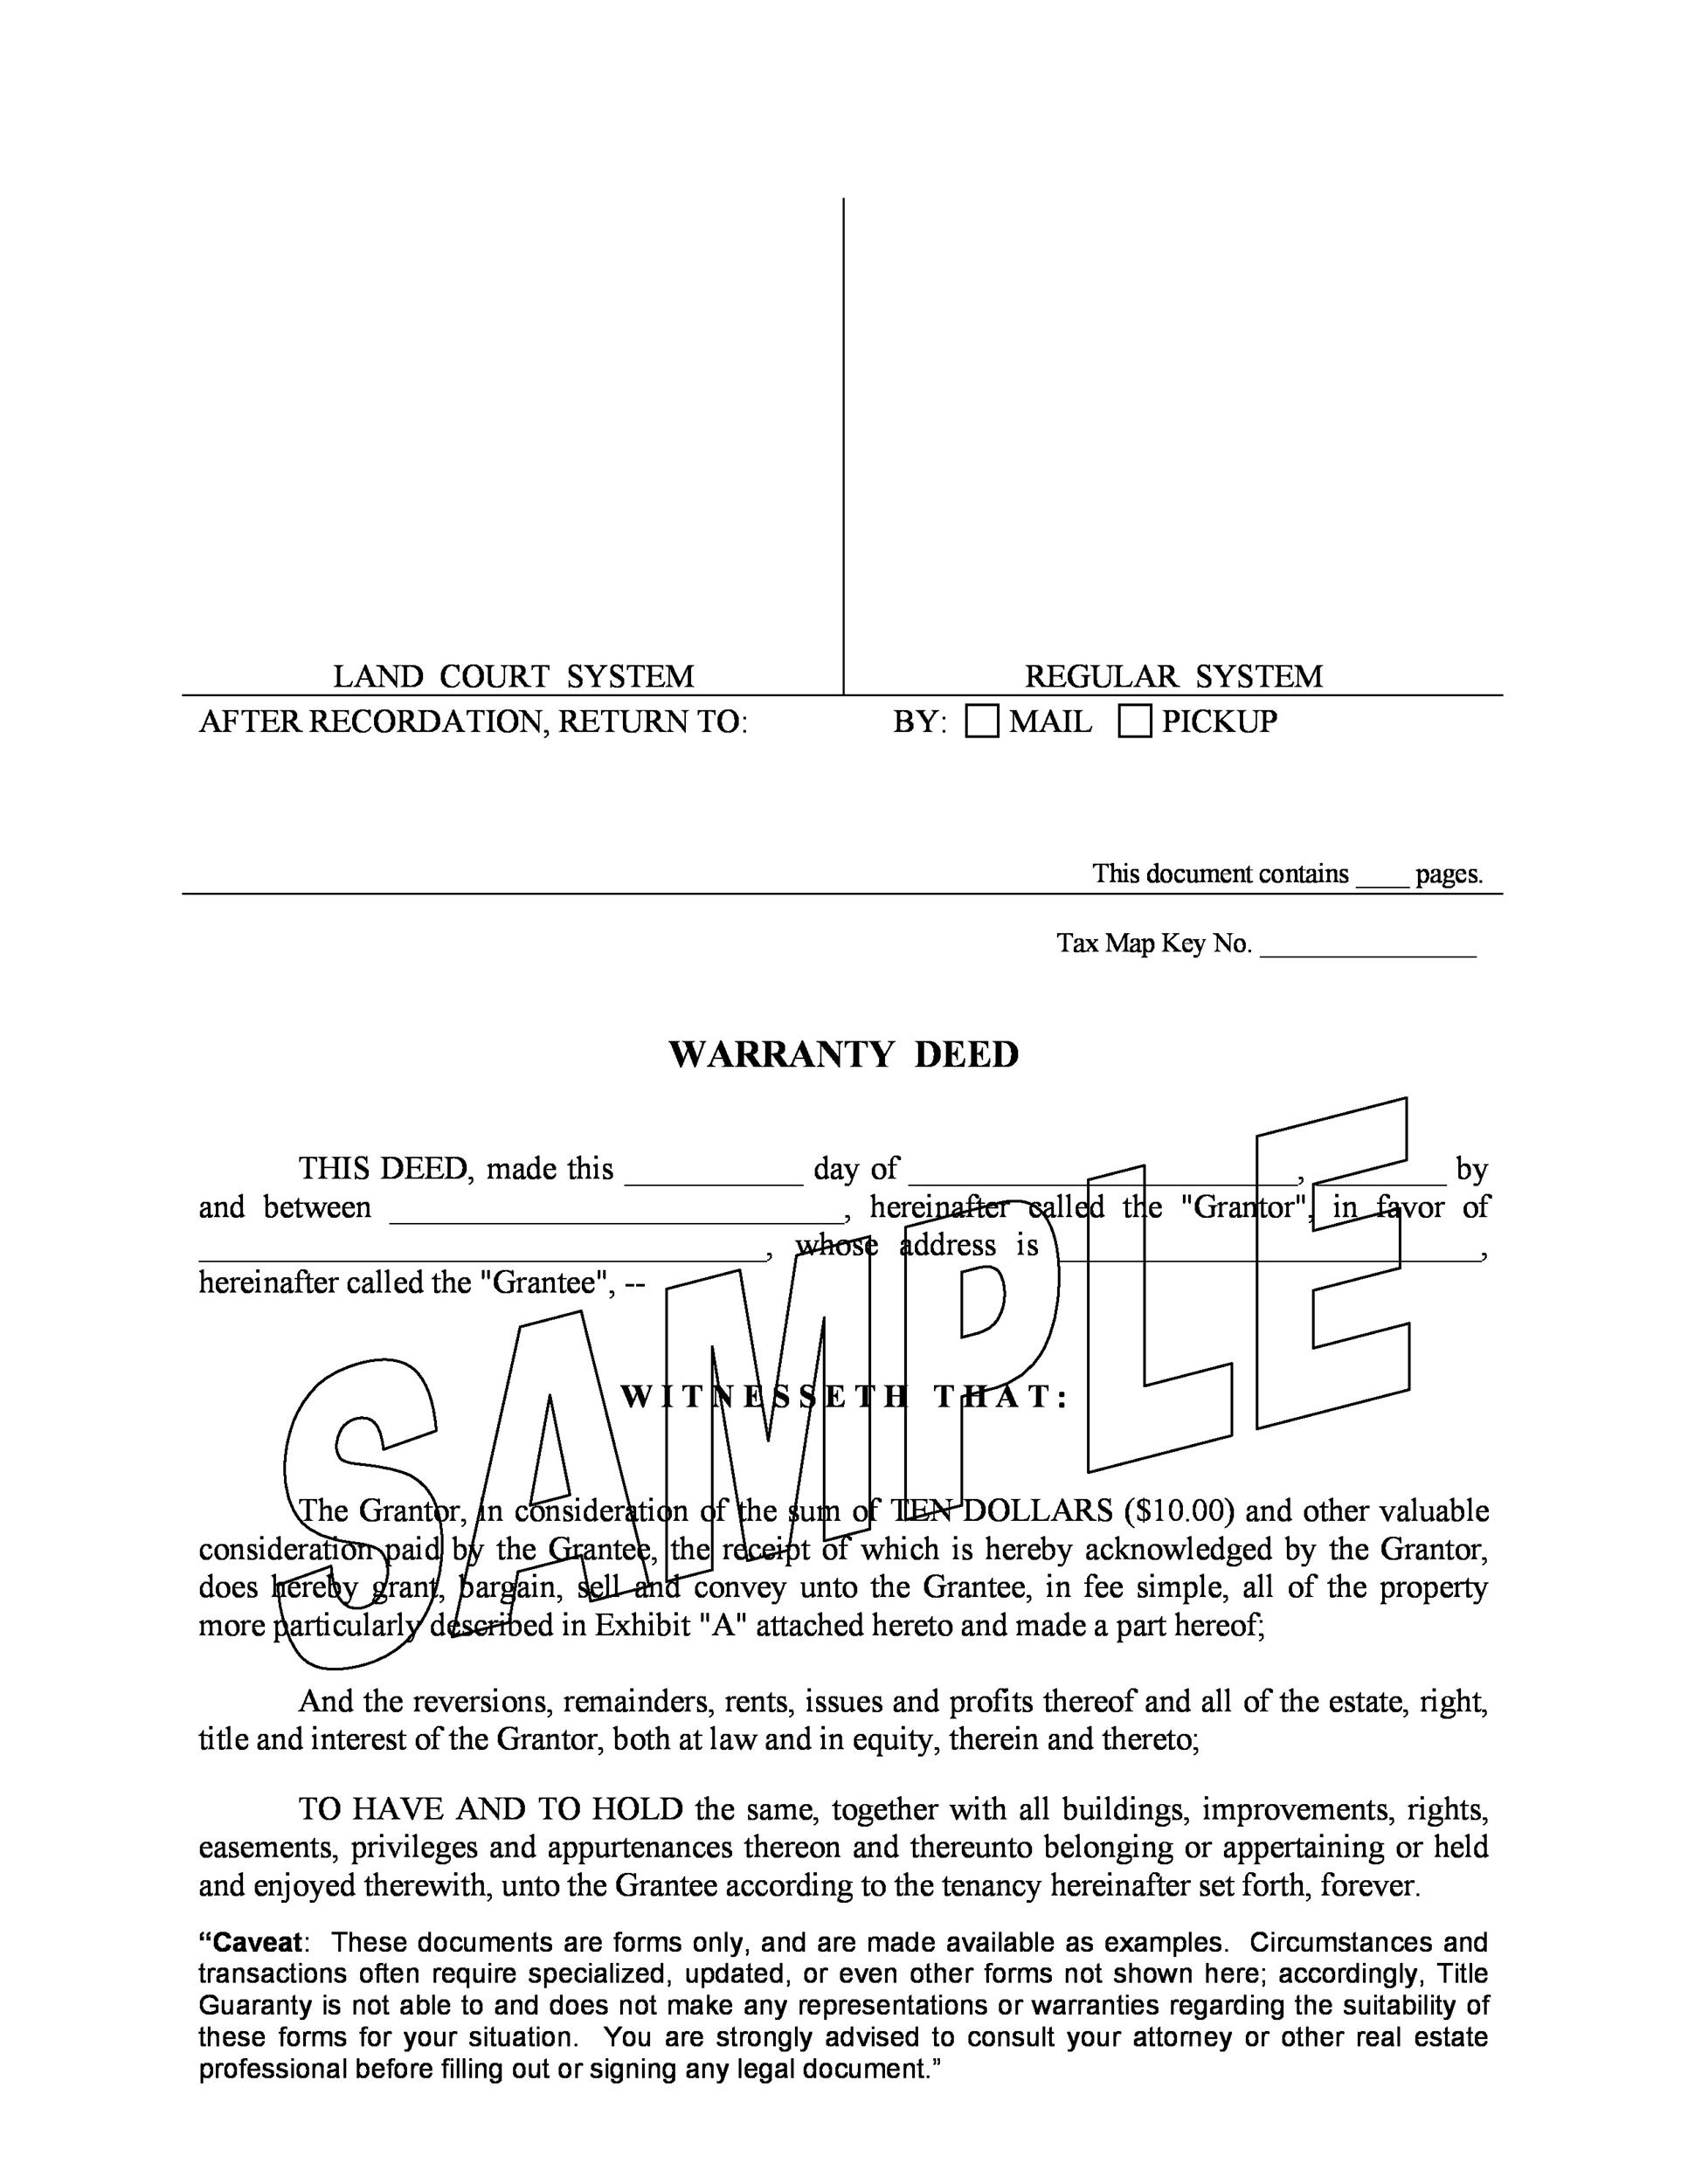 General Warranty Deed Samples